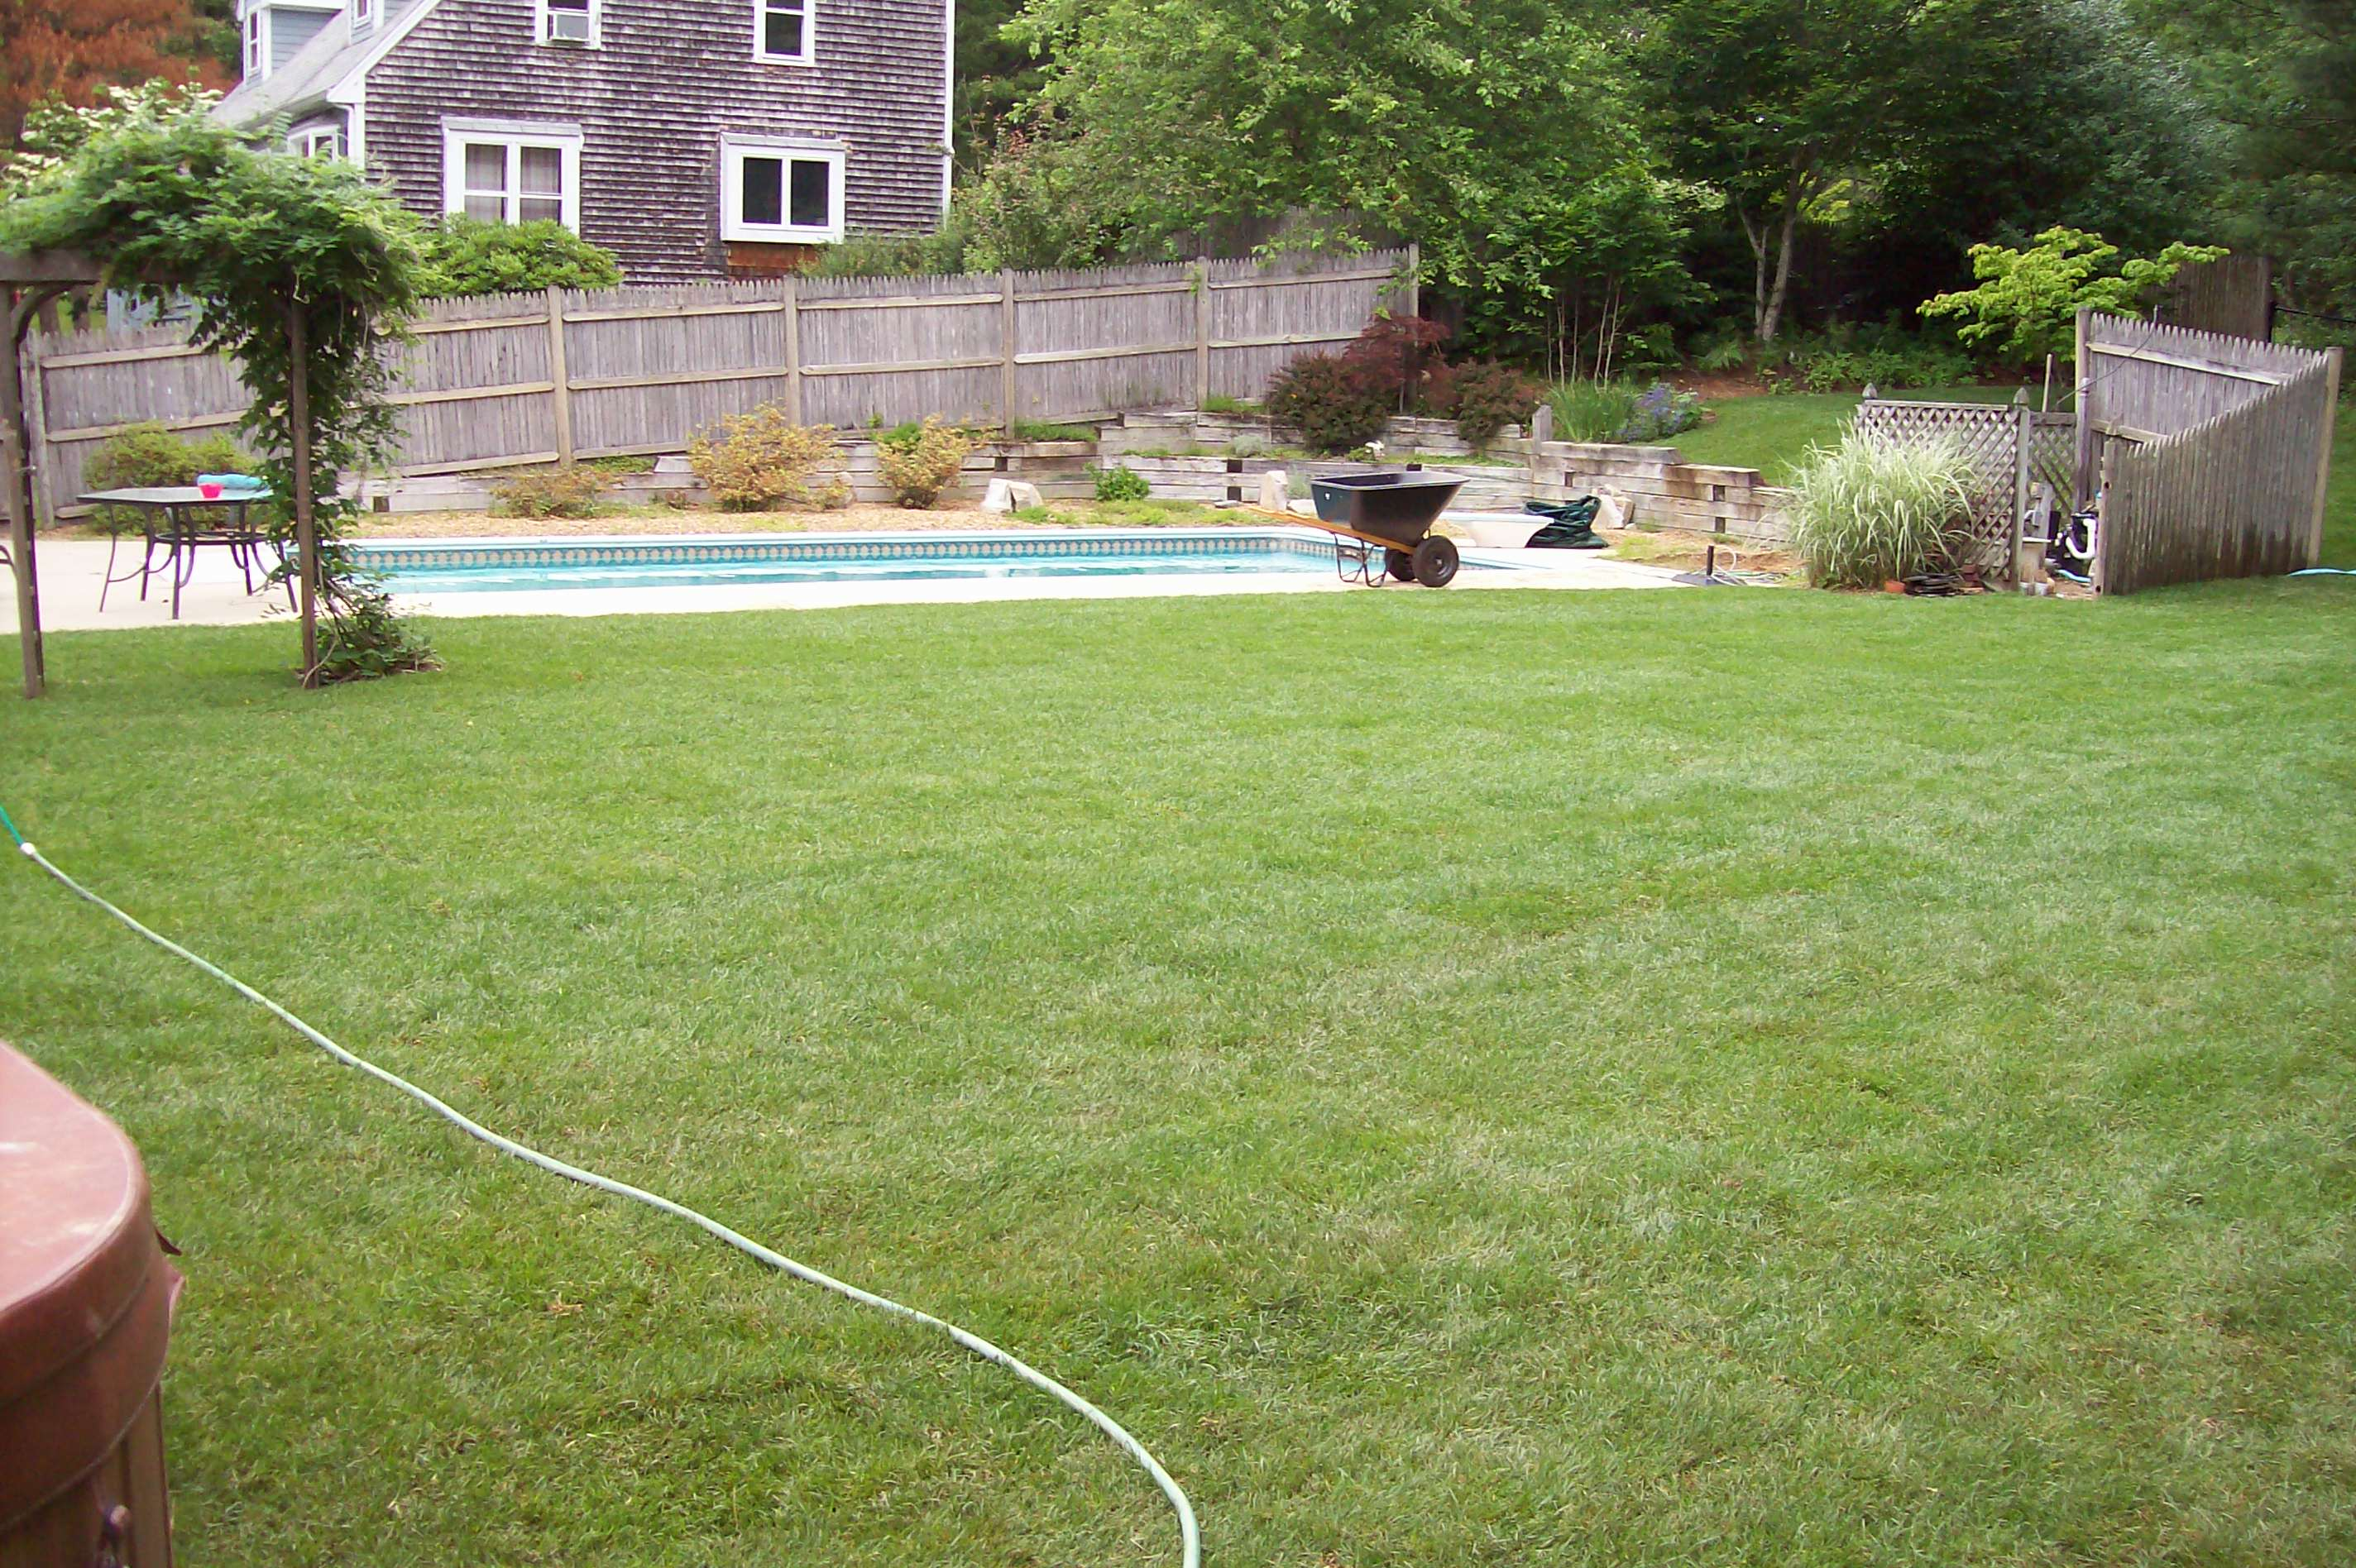 allscape tree u0026 turf services inc serving plymouth county and